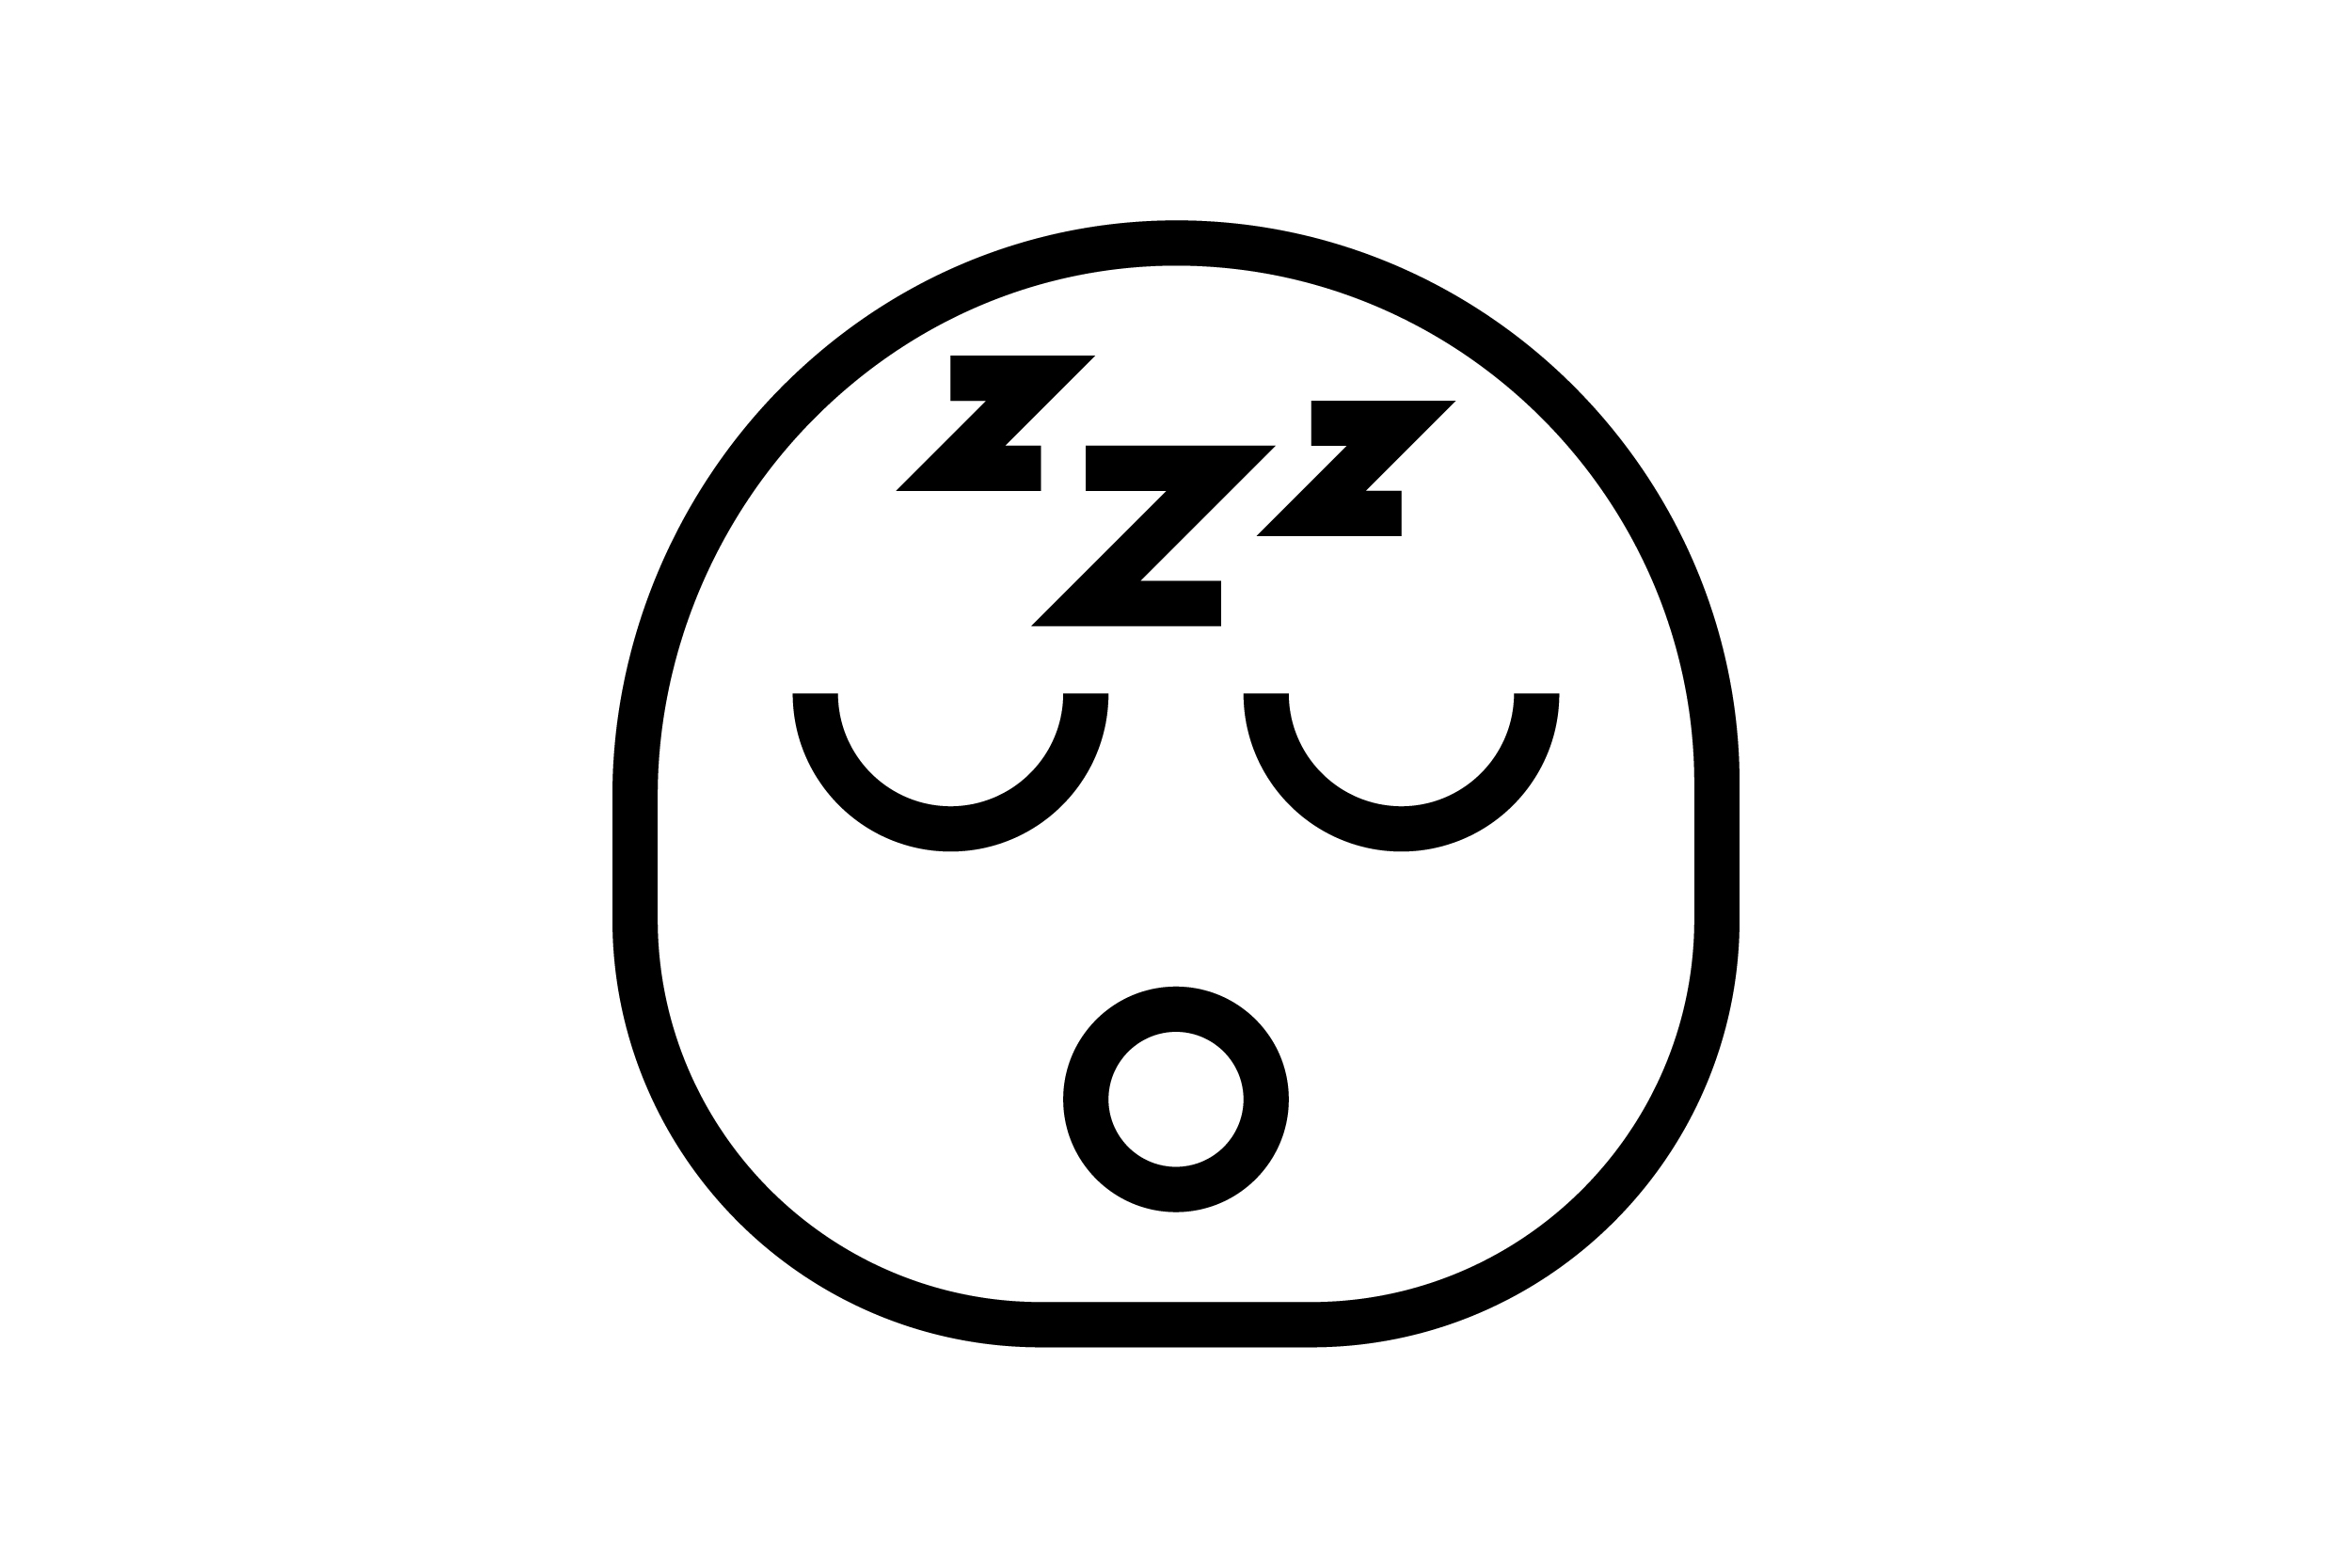 Download Free Sleeping Graphic By Muhammadfaisal40 Creative Fabrica for Cricut Explore, Silhouette and other cutting machines.